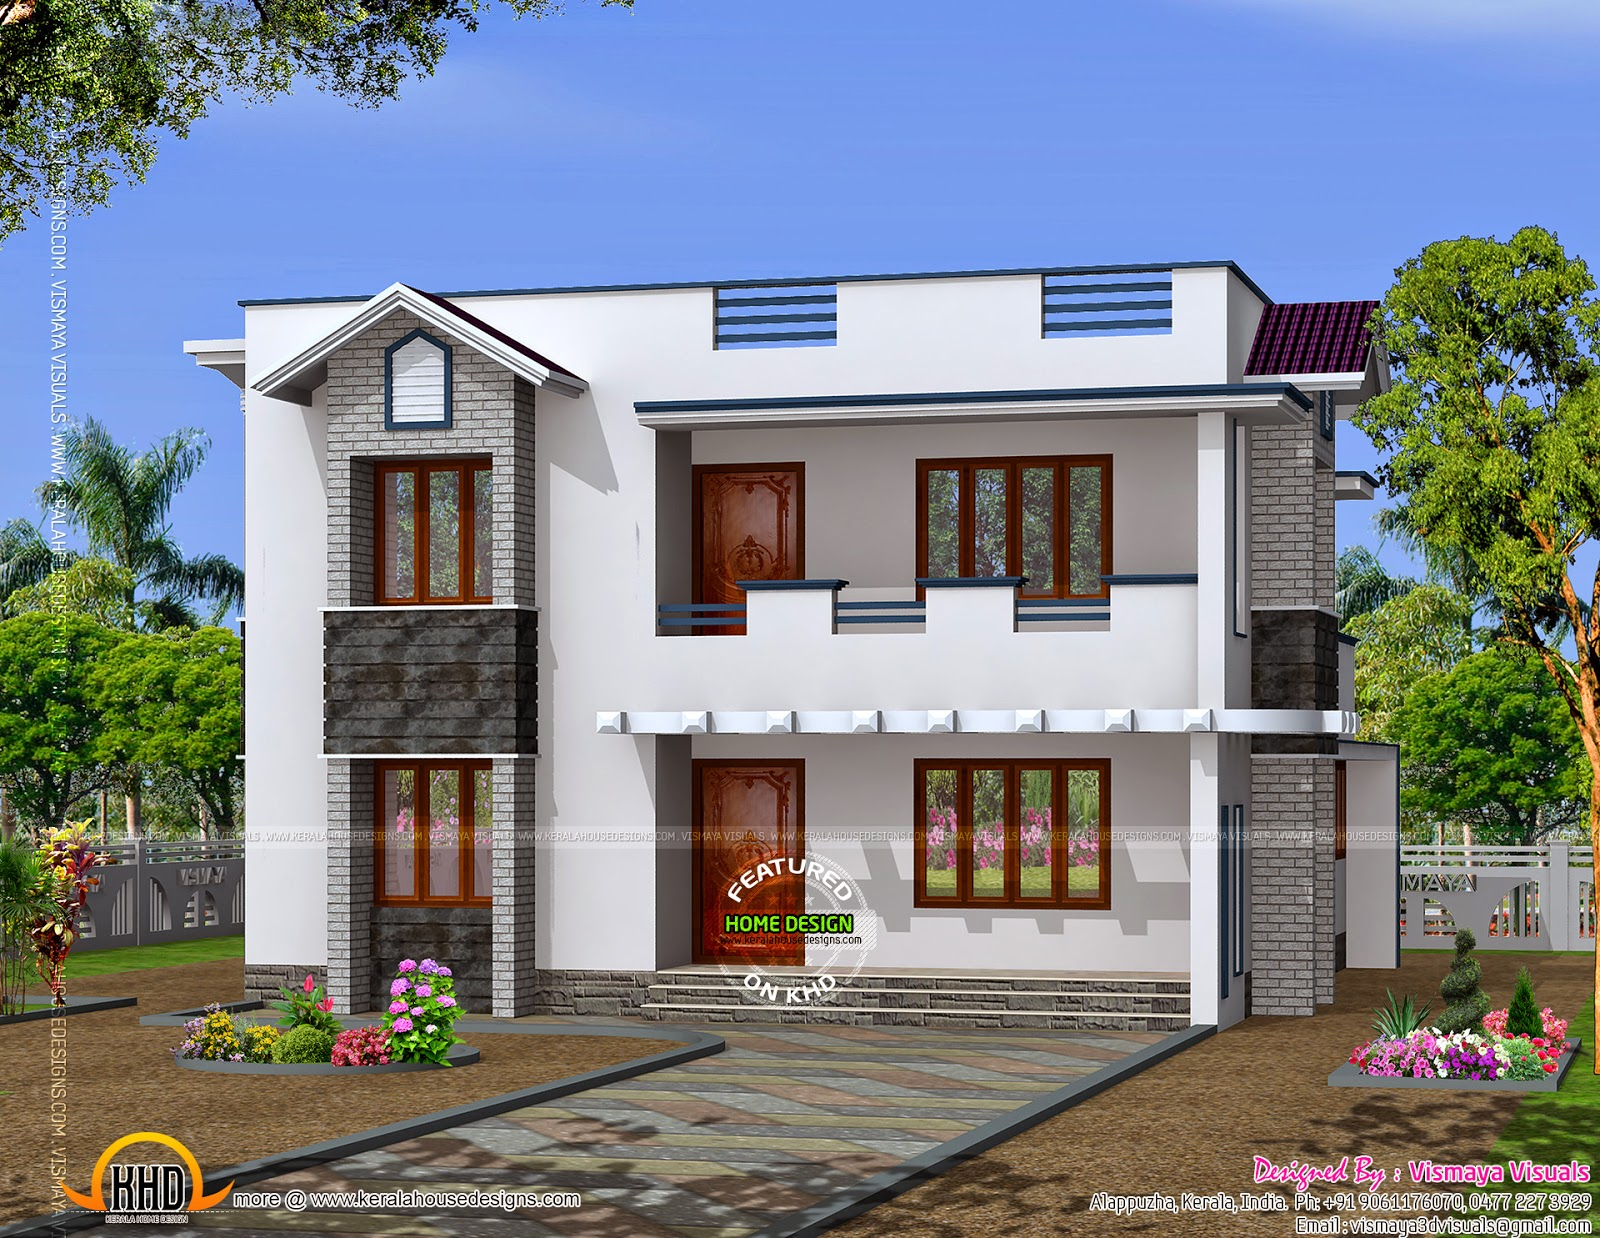 Simple design home kerala home design and floor plans - Design of home ...